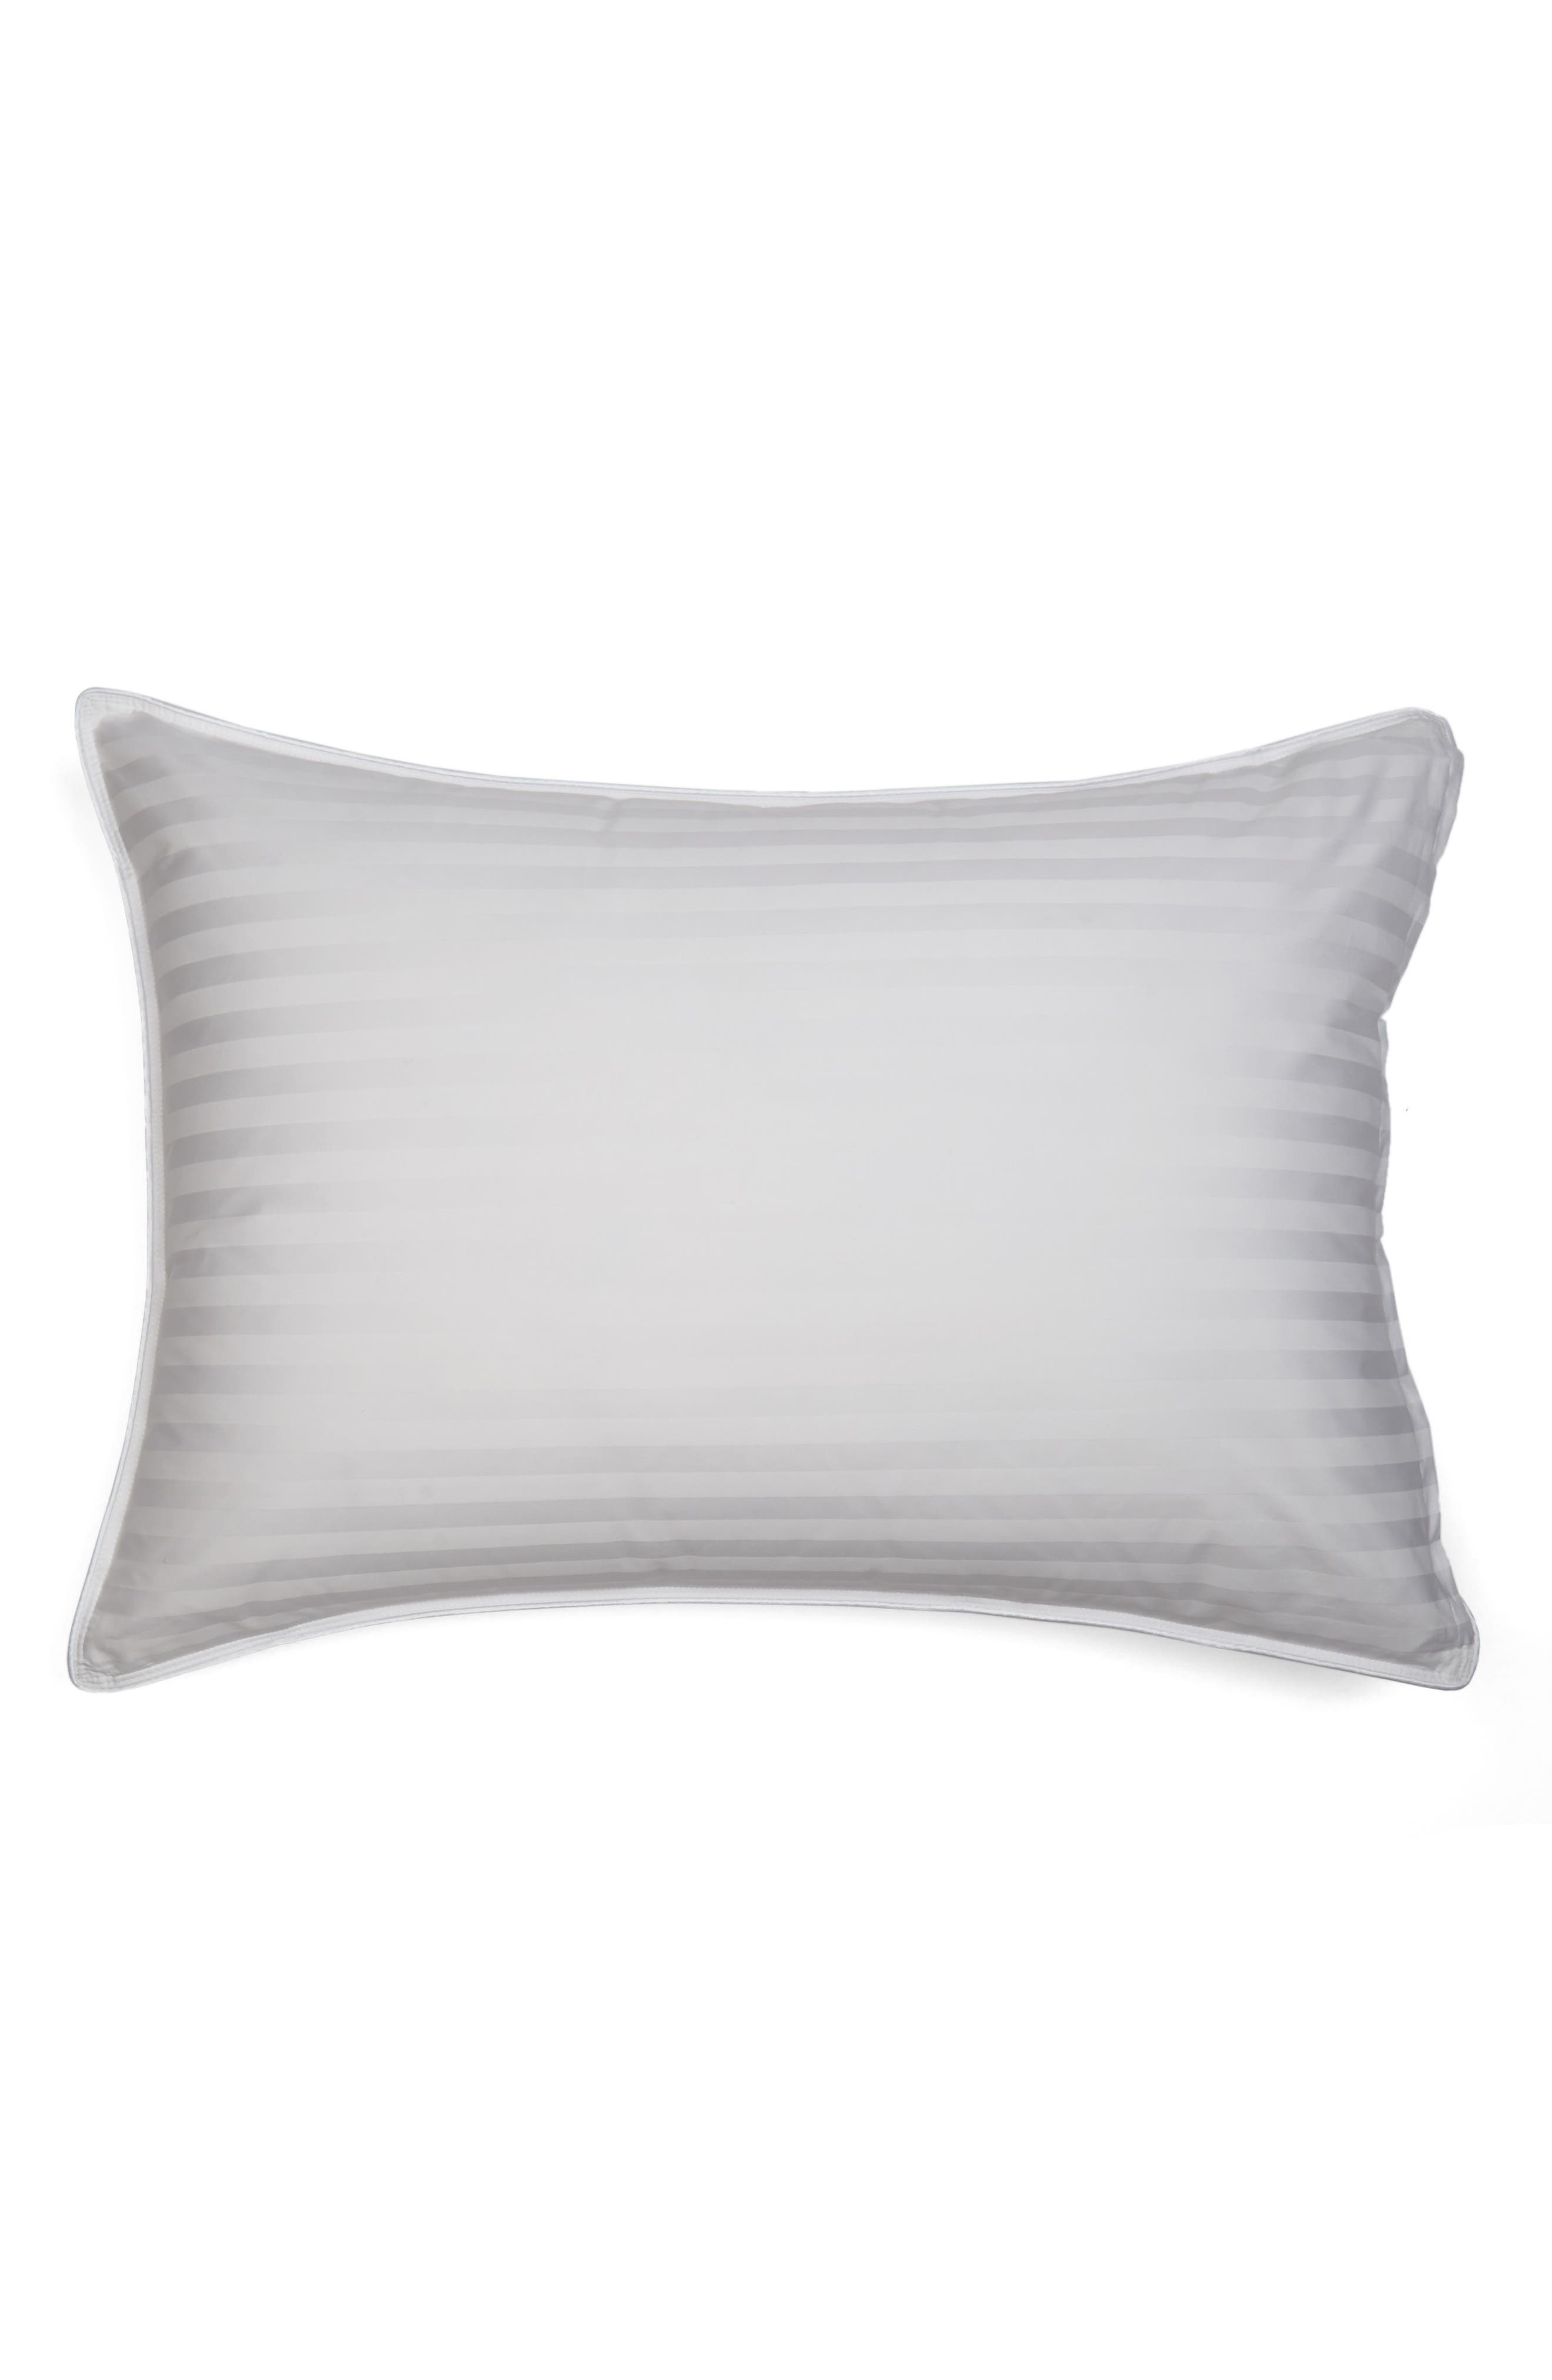 Feather & Down Chamber Pillow,                             Main thumbnail 1, color,                             WHITE